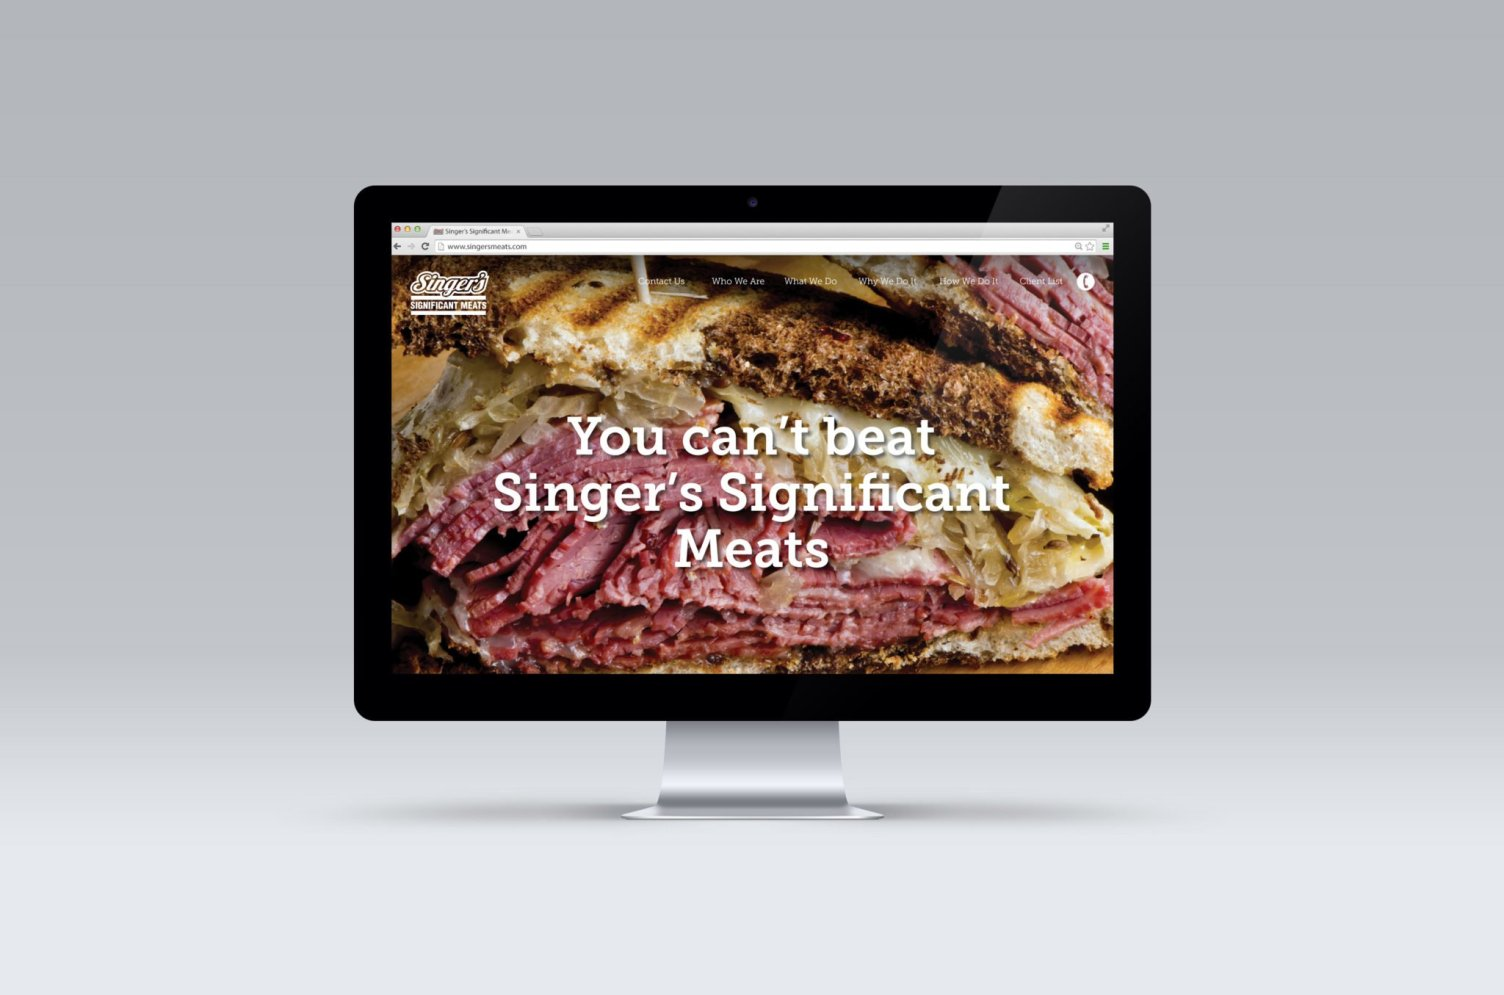 Singer's Significant Meats Website